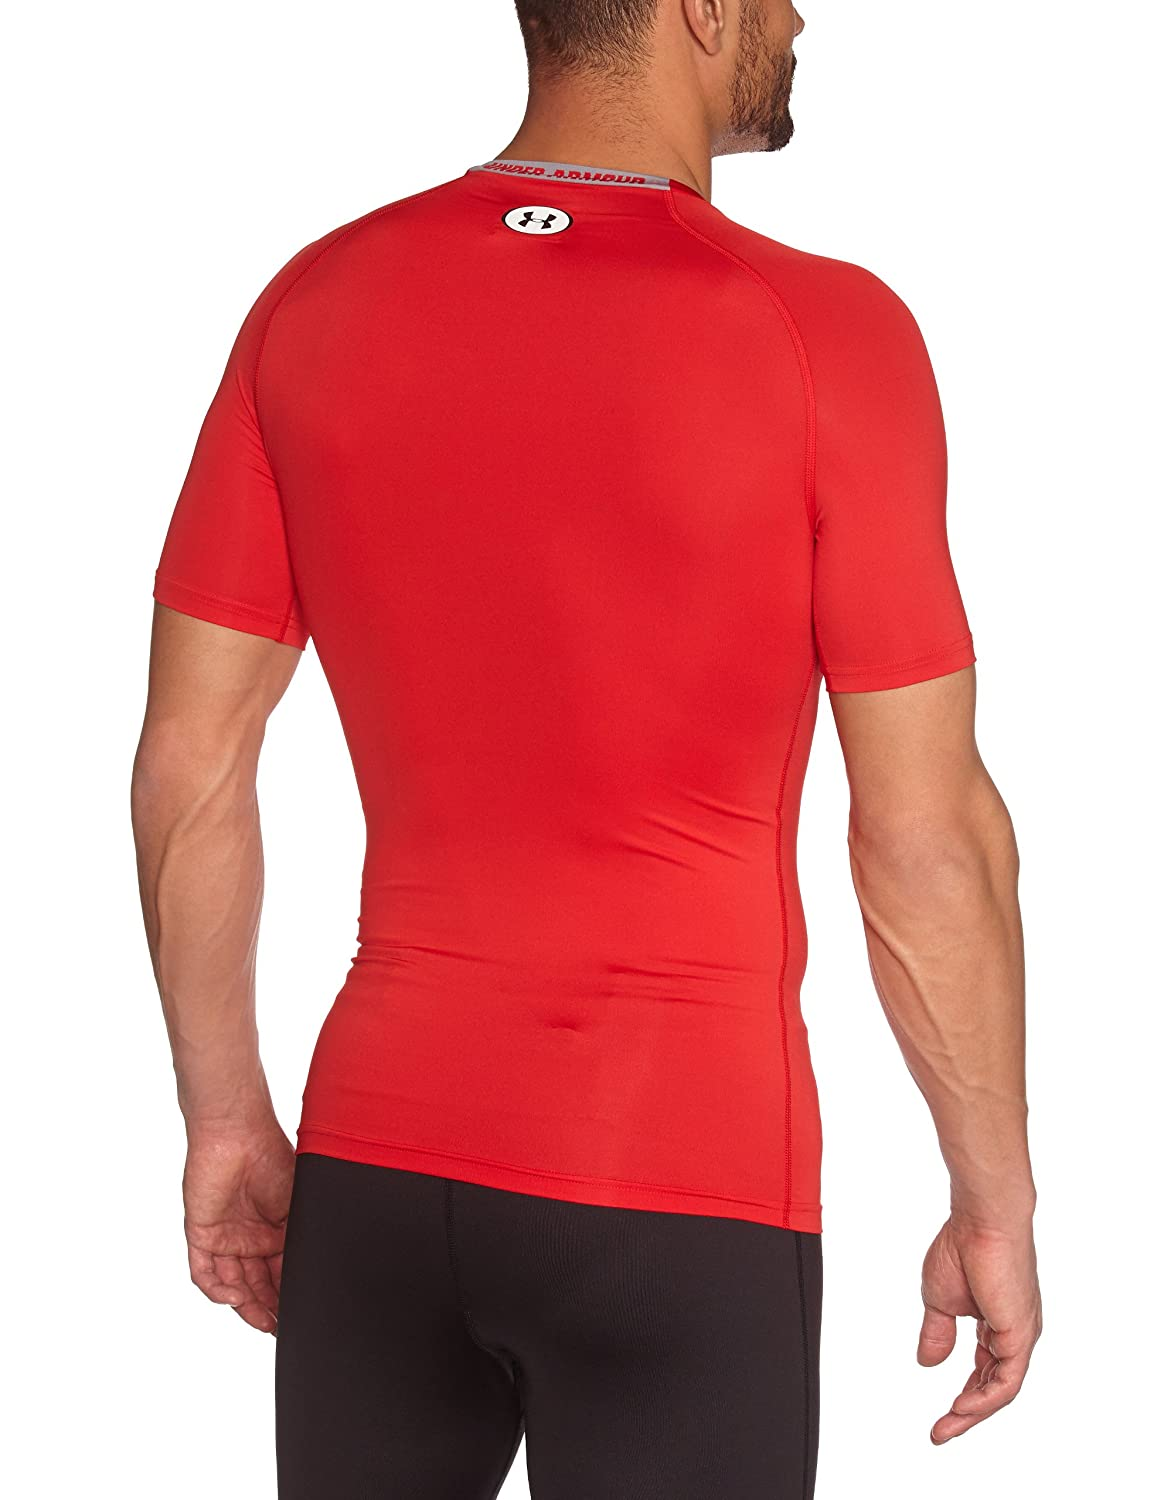 UA Men's HeatGear Armour Printed Short Sleeve Compression Shirt Under Armour 1257477